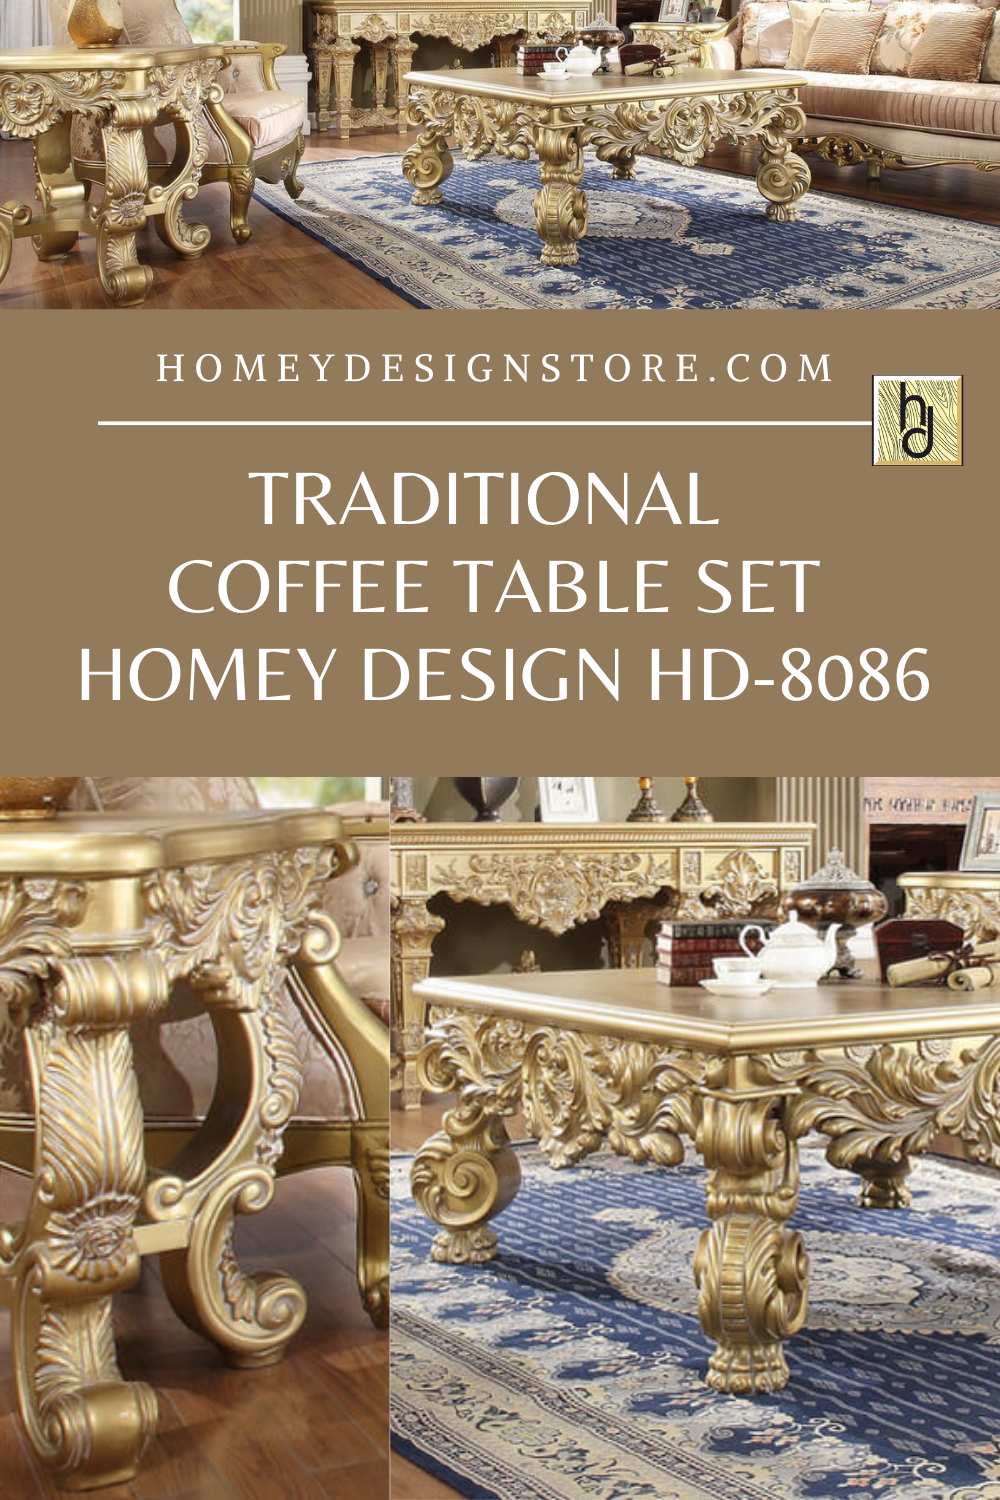 Antique Gold Perfect Brown Coffee Table Set 3pcs Traditional Homey Design Hd 8008 Hd 8008 Ctset3 Traditional Coffee Table Brown Coffee Table Coffee Table Setting [ 1080 x 1174 Pixel ]